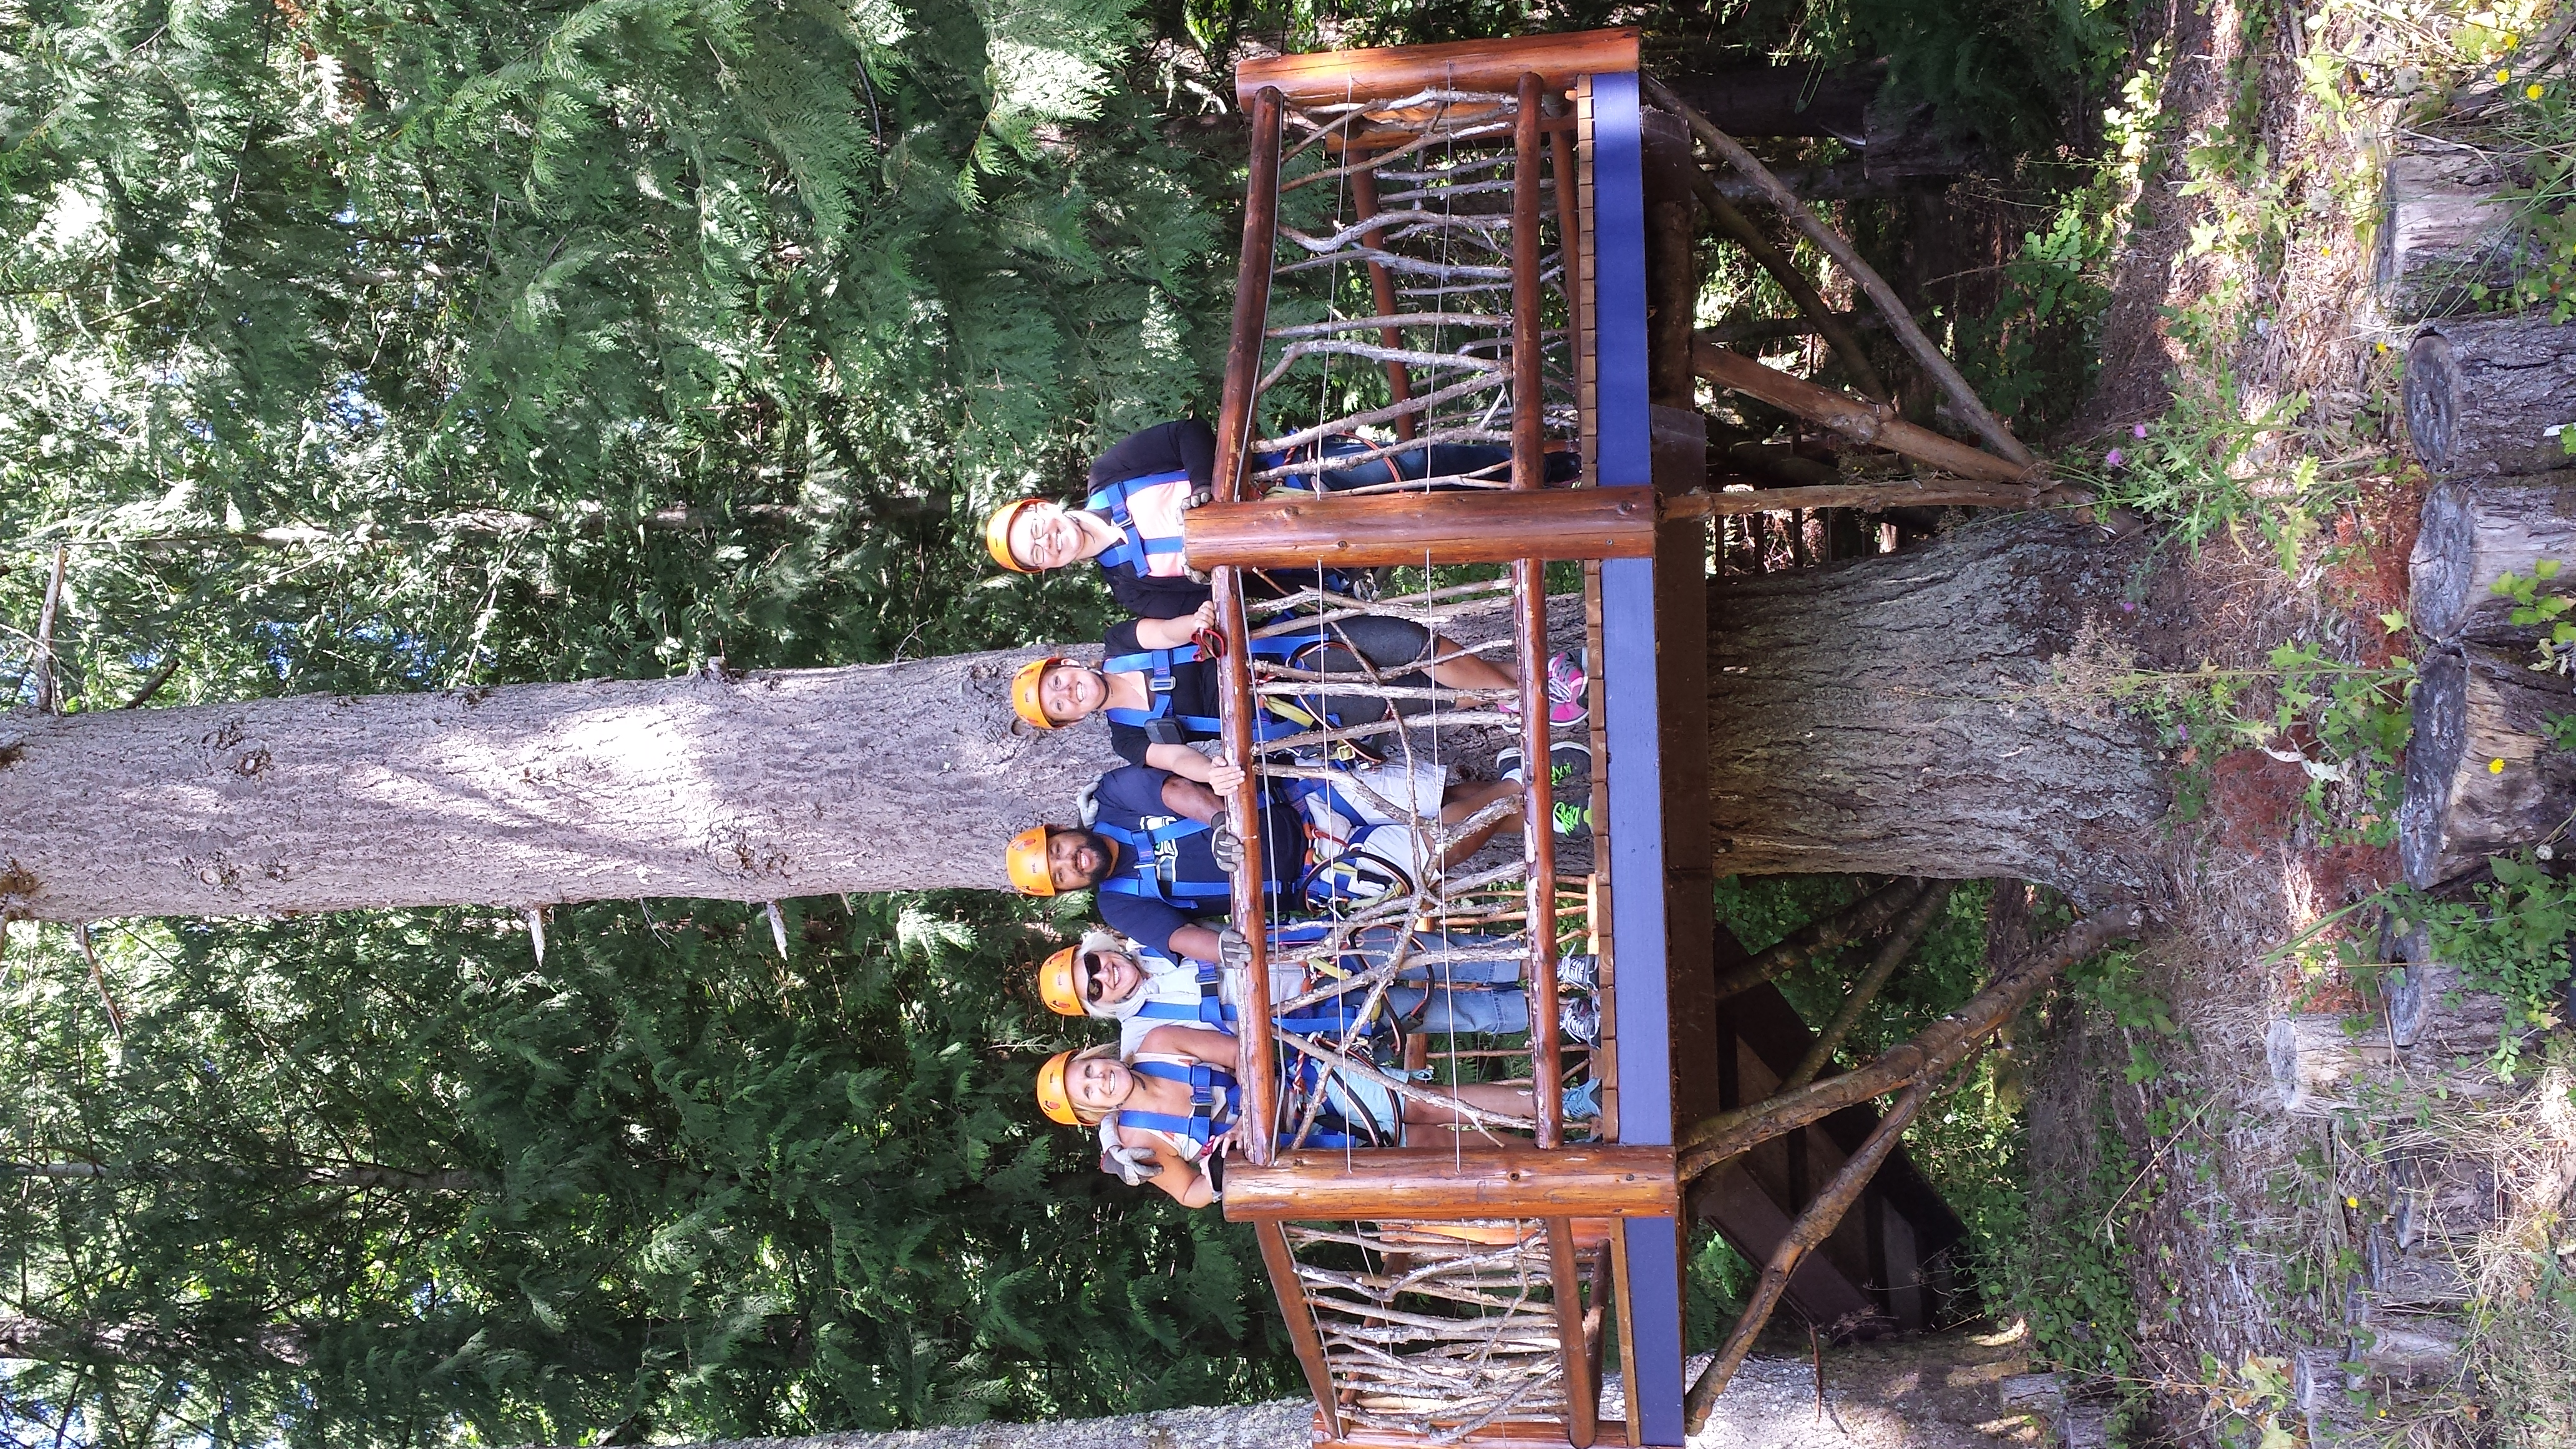 Tiffany Ostreim_Tree House Zip Line